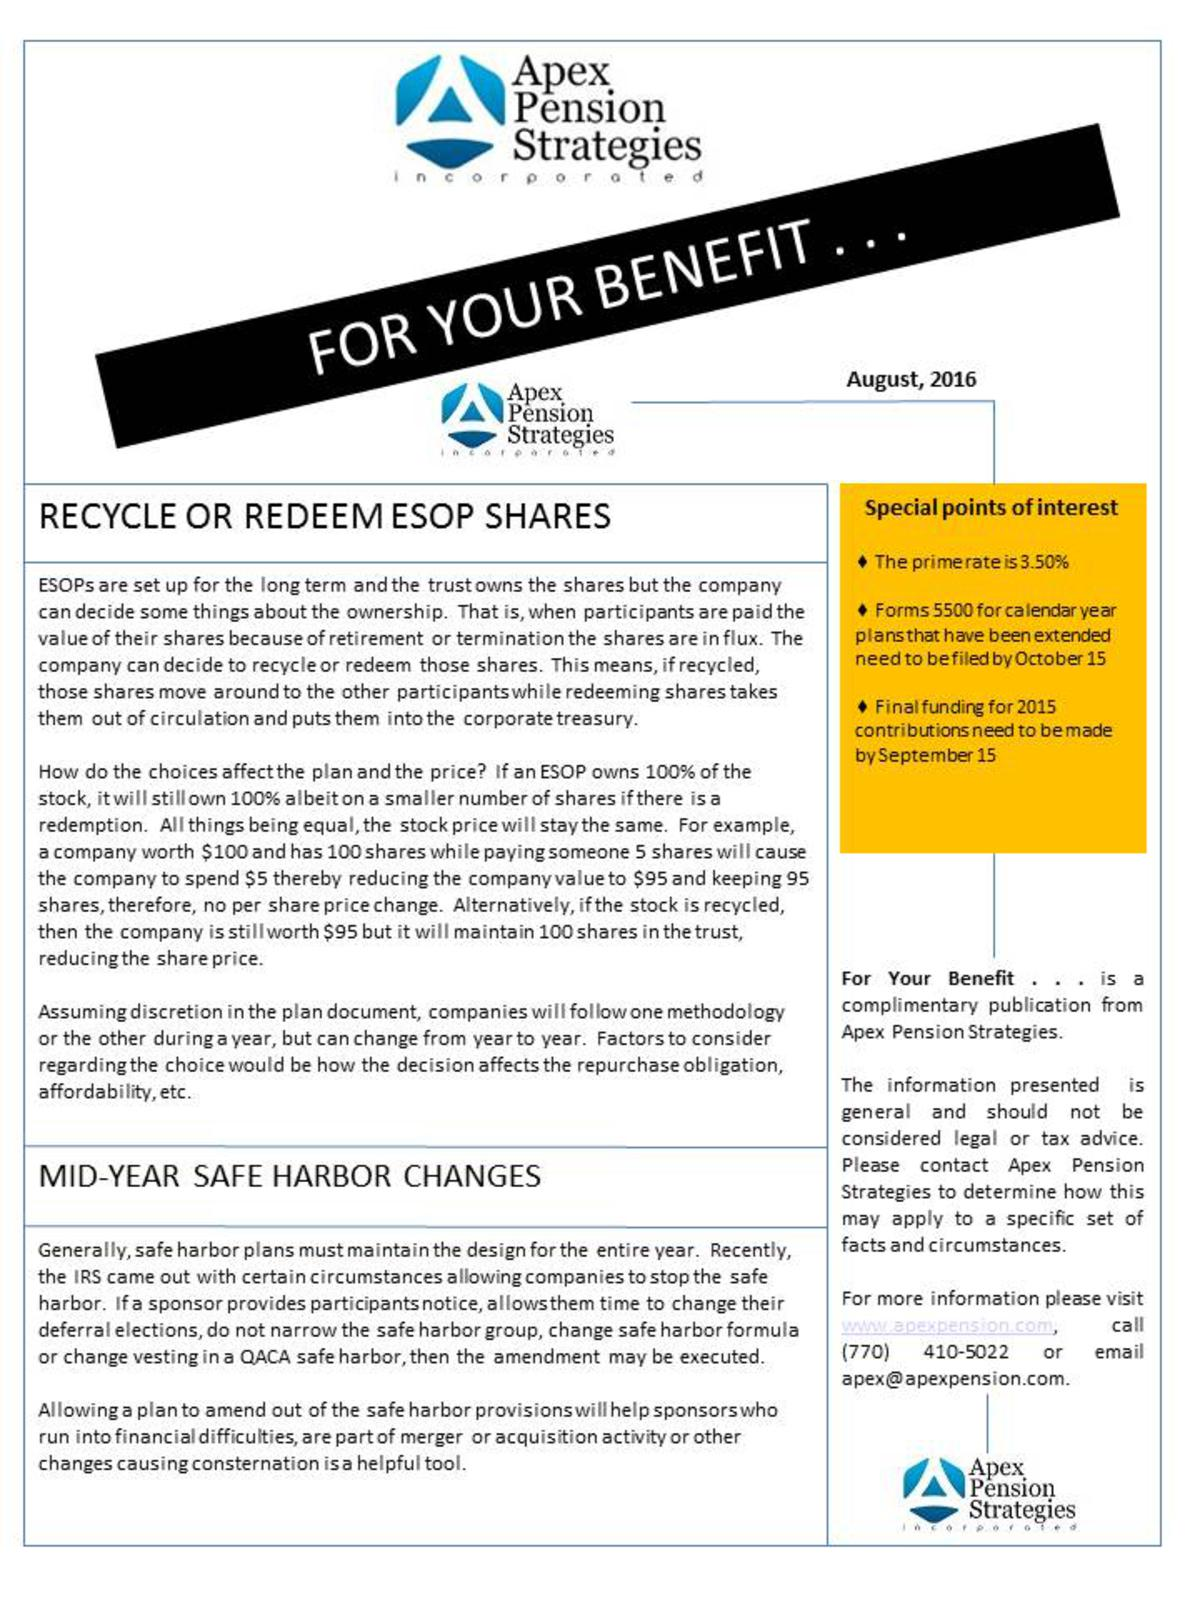 Recycle or Redeem ESOP shares